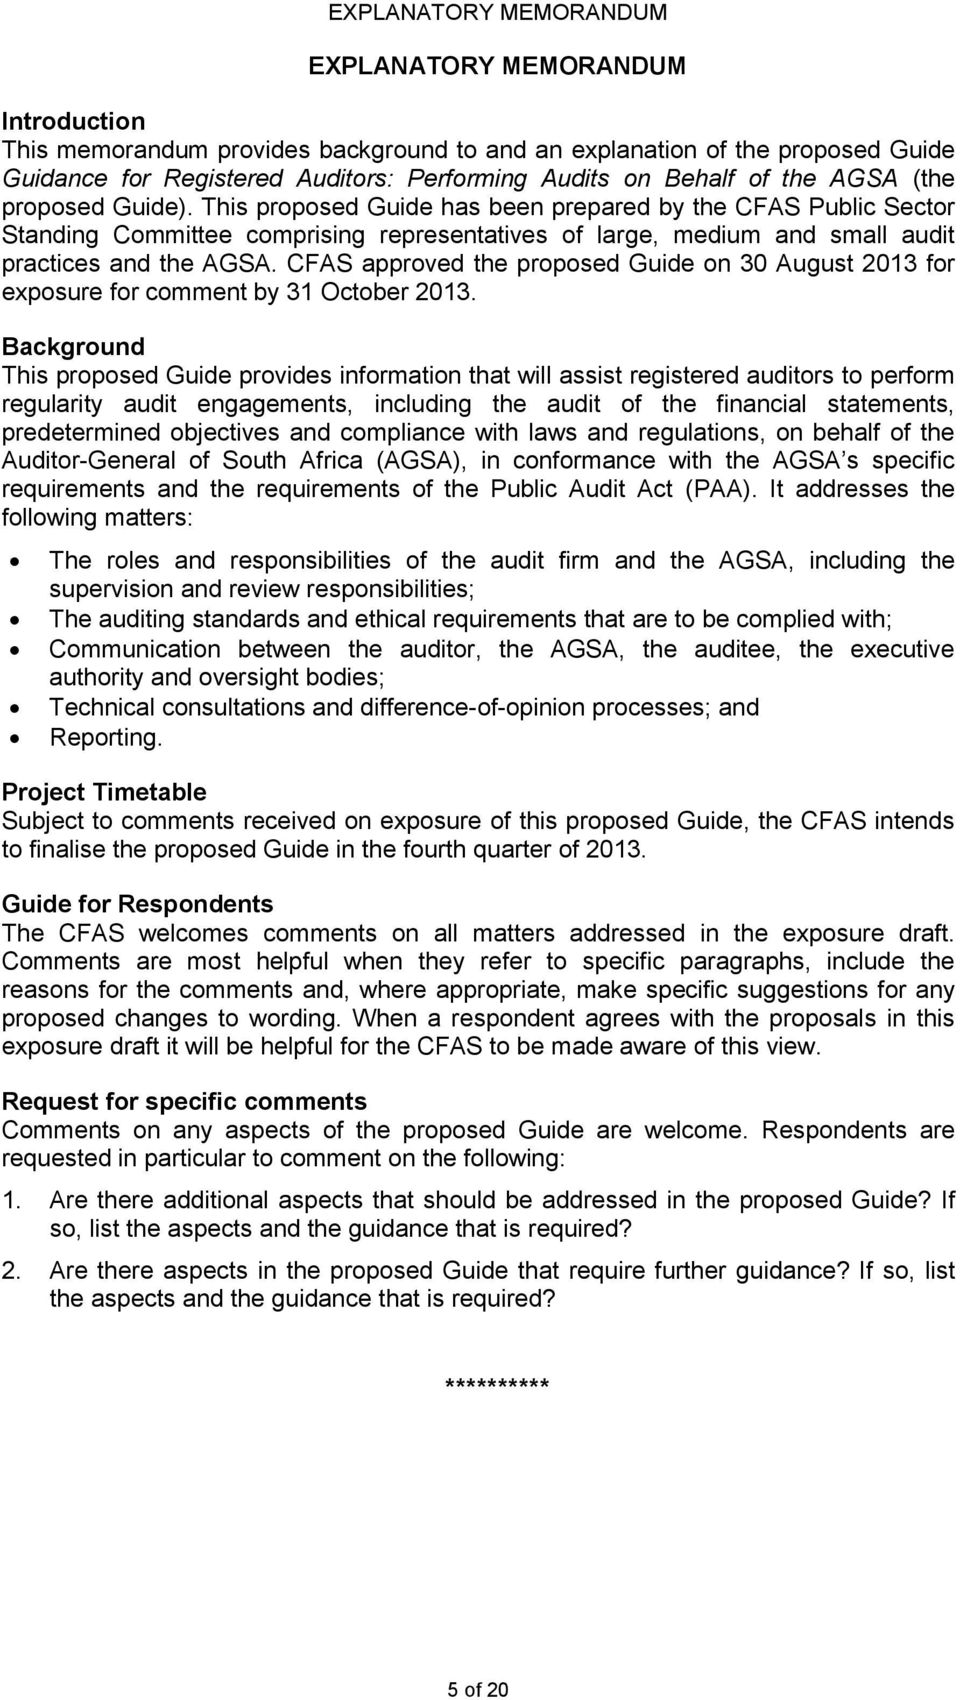 This proposed Guide has been prepared by the CFAS Public Sector Standing Committee comprising representatives of large, medium and small audit practices and the AGSA.